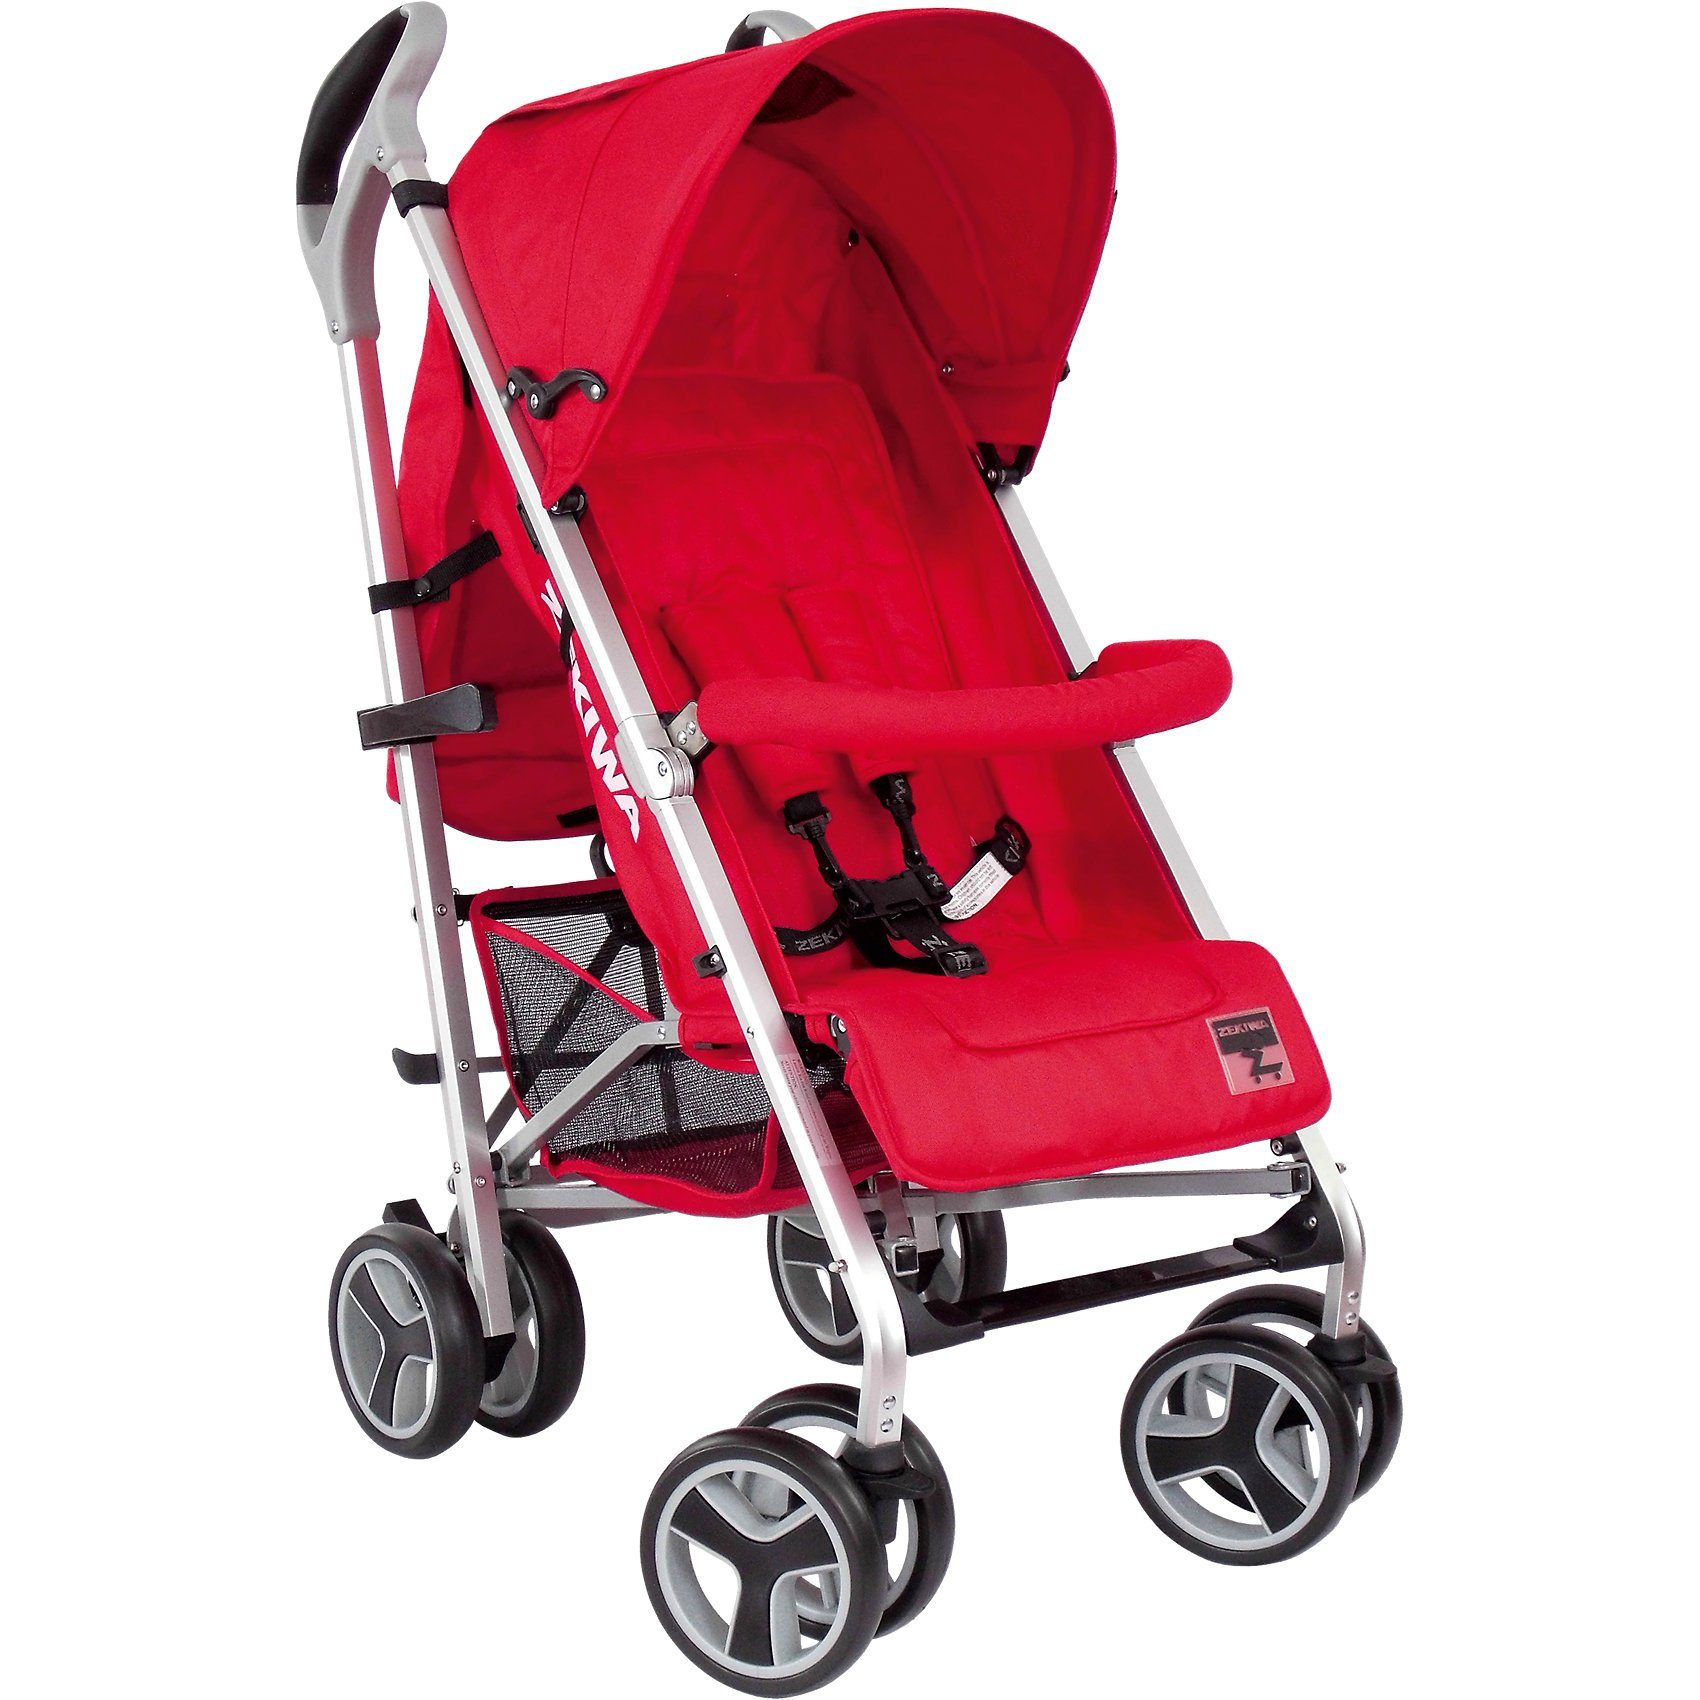 Zekiwa Buggy ALU Champion, red, 2016